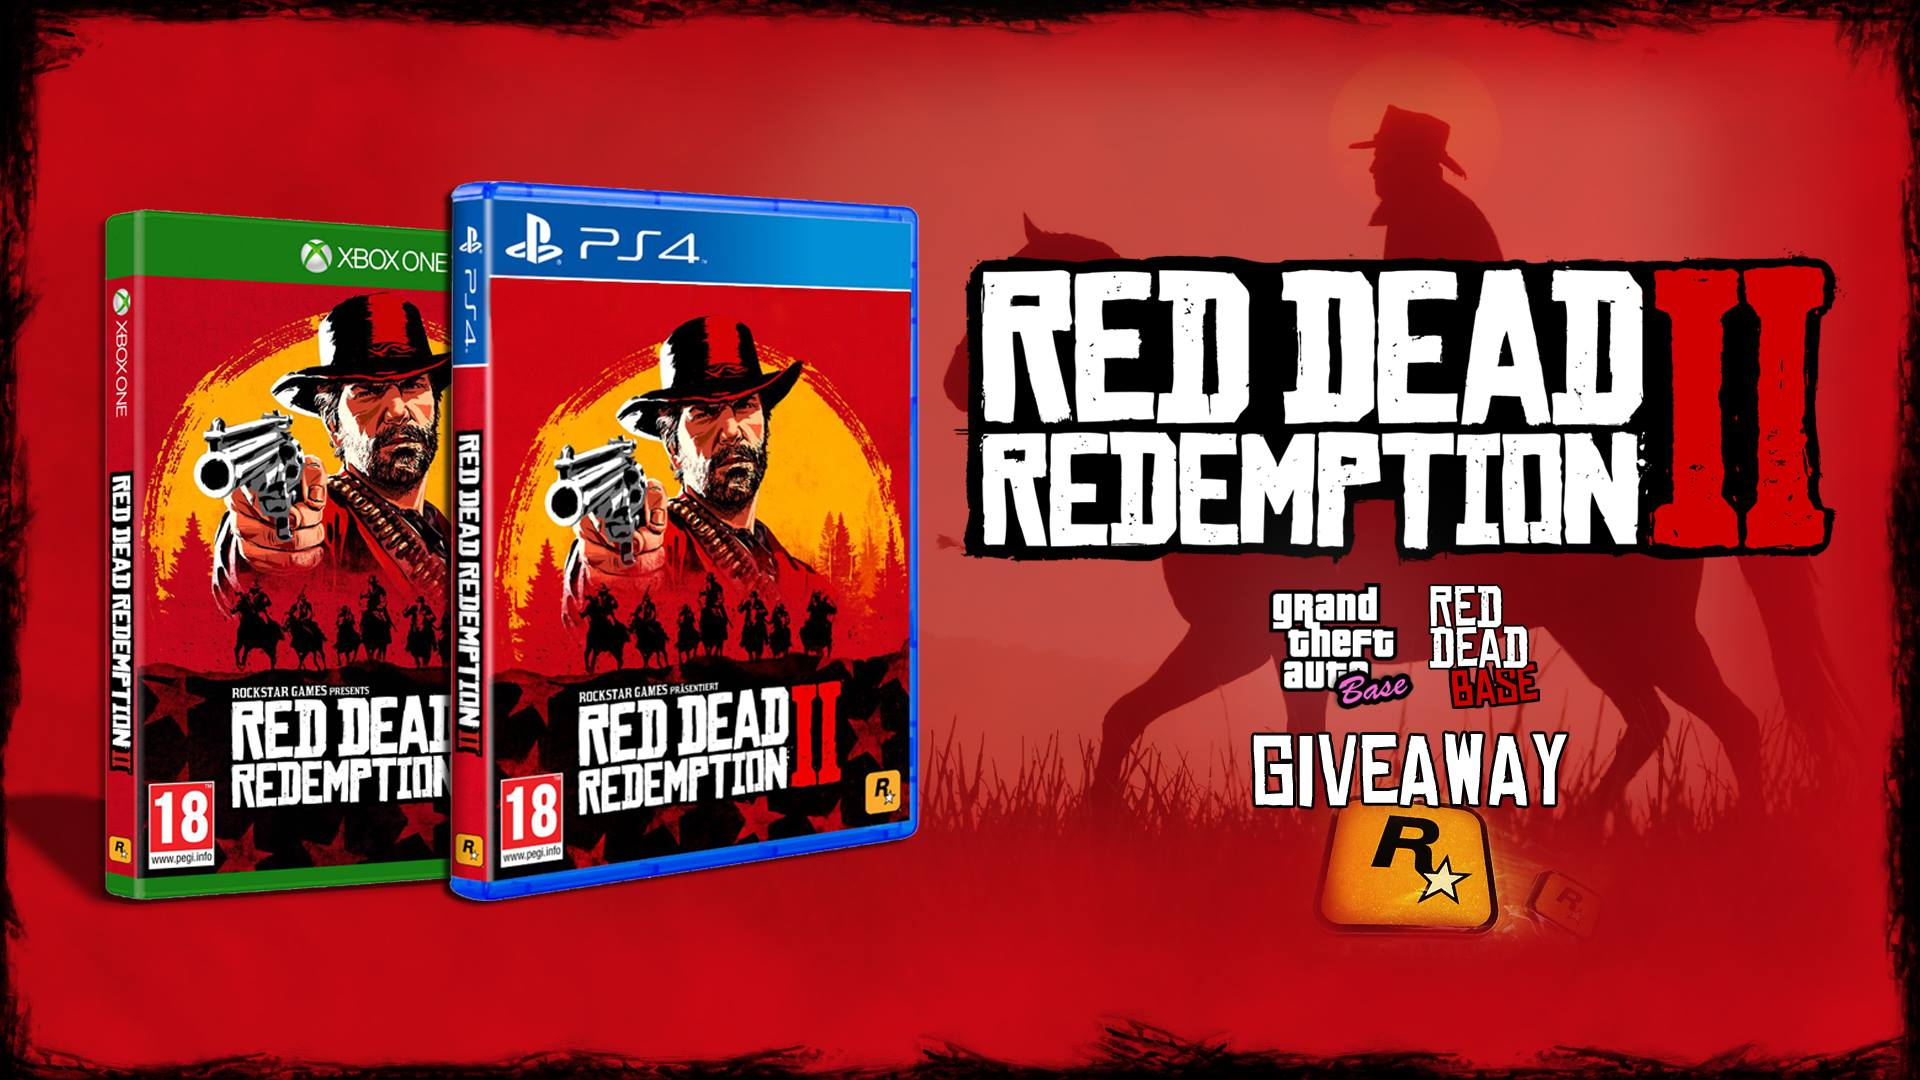 Red Dead Redemption 2 Giveaway - Win a copy for a console of your choosing!